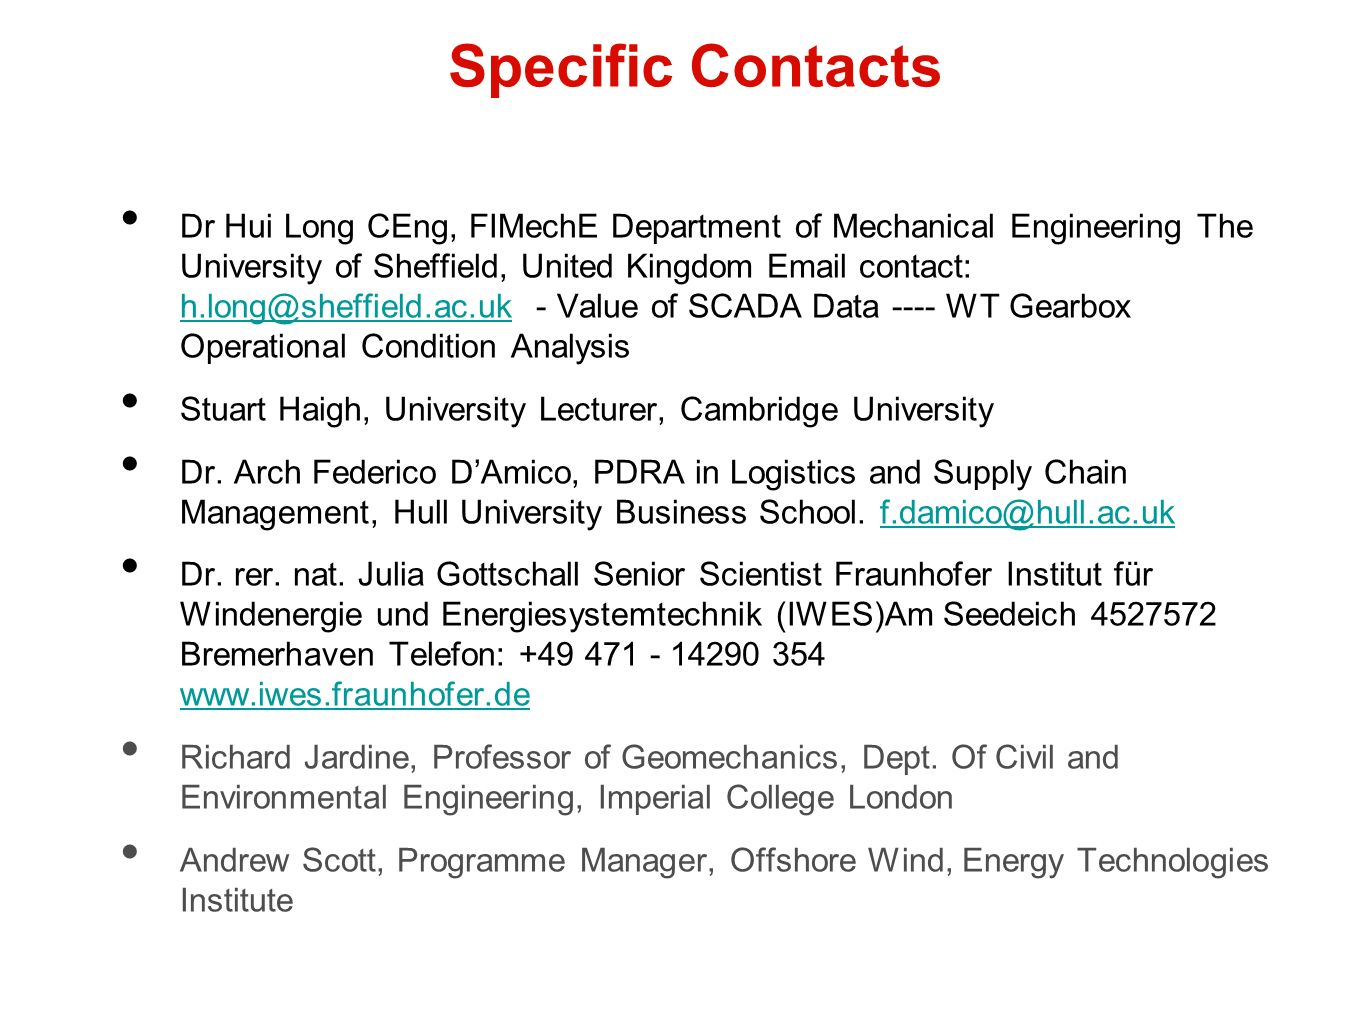 Specific Contacts Dr Hui Long CEng, FIMechE Department of Mechanical Engineering The University of Sheffield, United Kingdom Email contact: h.long@sheffield.ac.uk - Value of SCADA Data ---- WT Gearbox Operational Condition Analysis h.long@sheffield.ac.uk Stuart Haigh, University Lecturer, Cambridge University Dr.